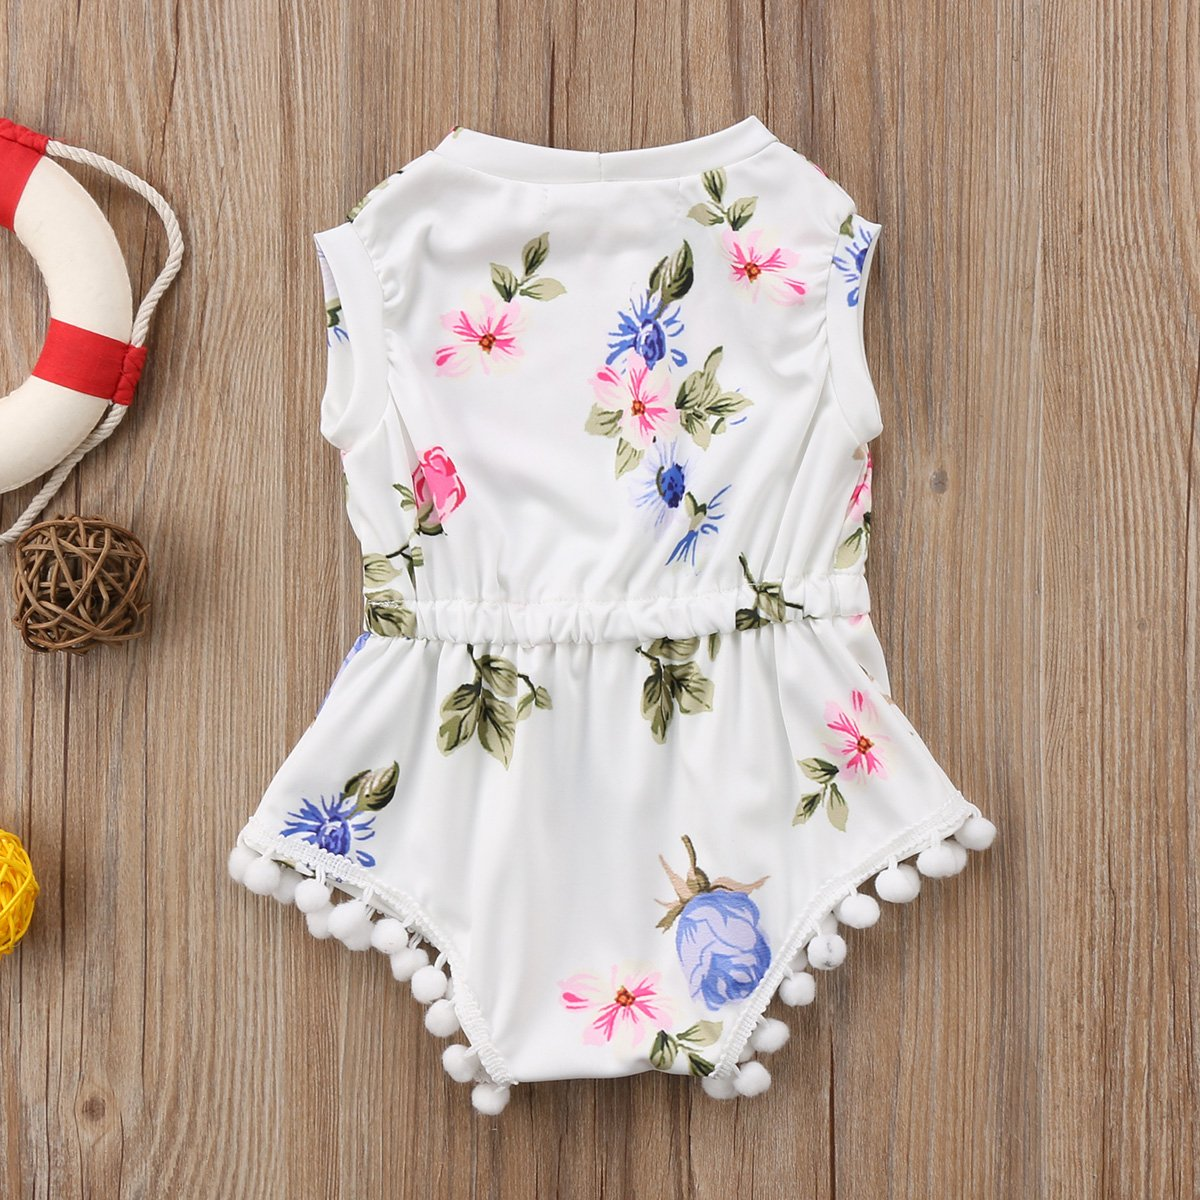 Enhill Infant Toddler Baby Girl Floral Sleeveless Romper with Pompom Bodysuit Outfit Clothes